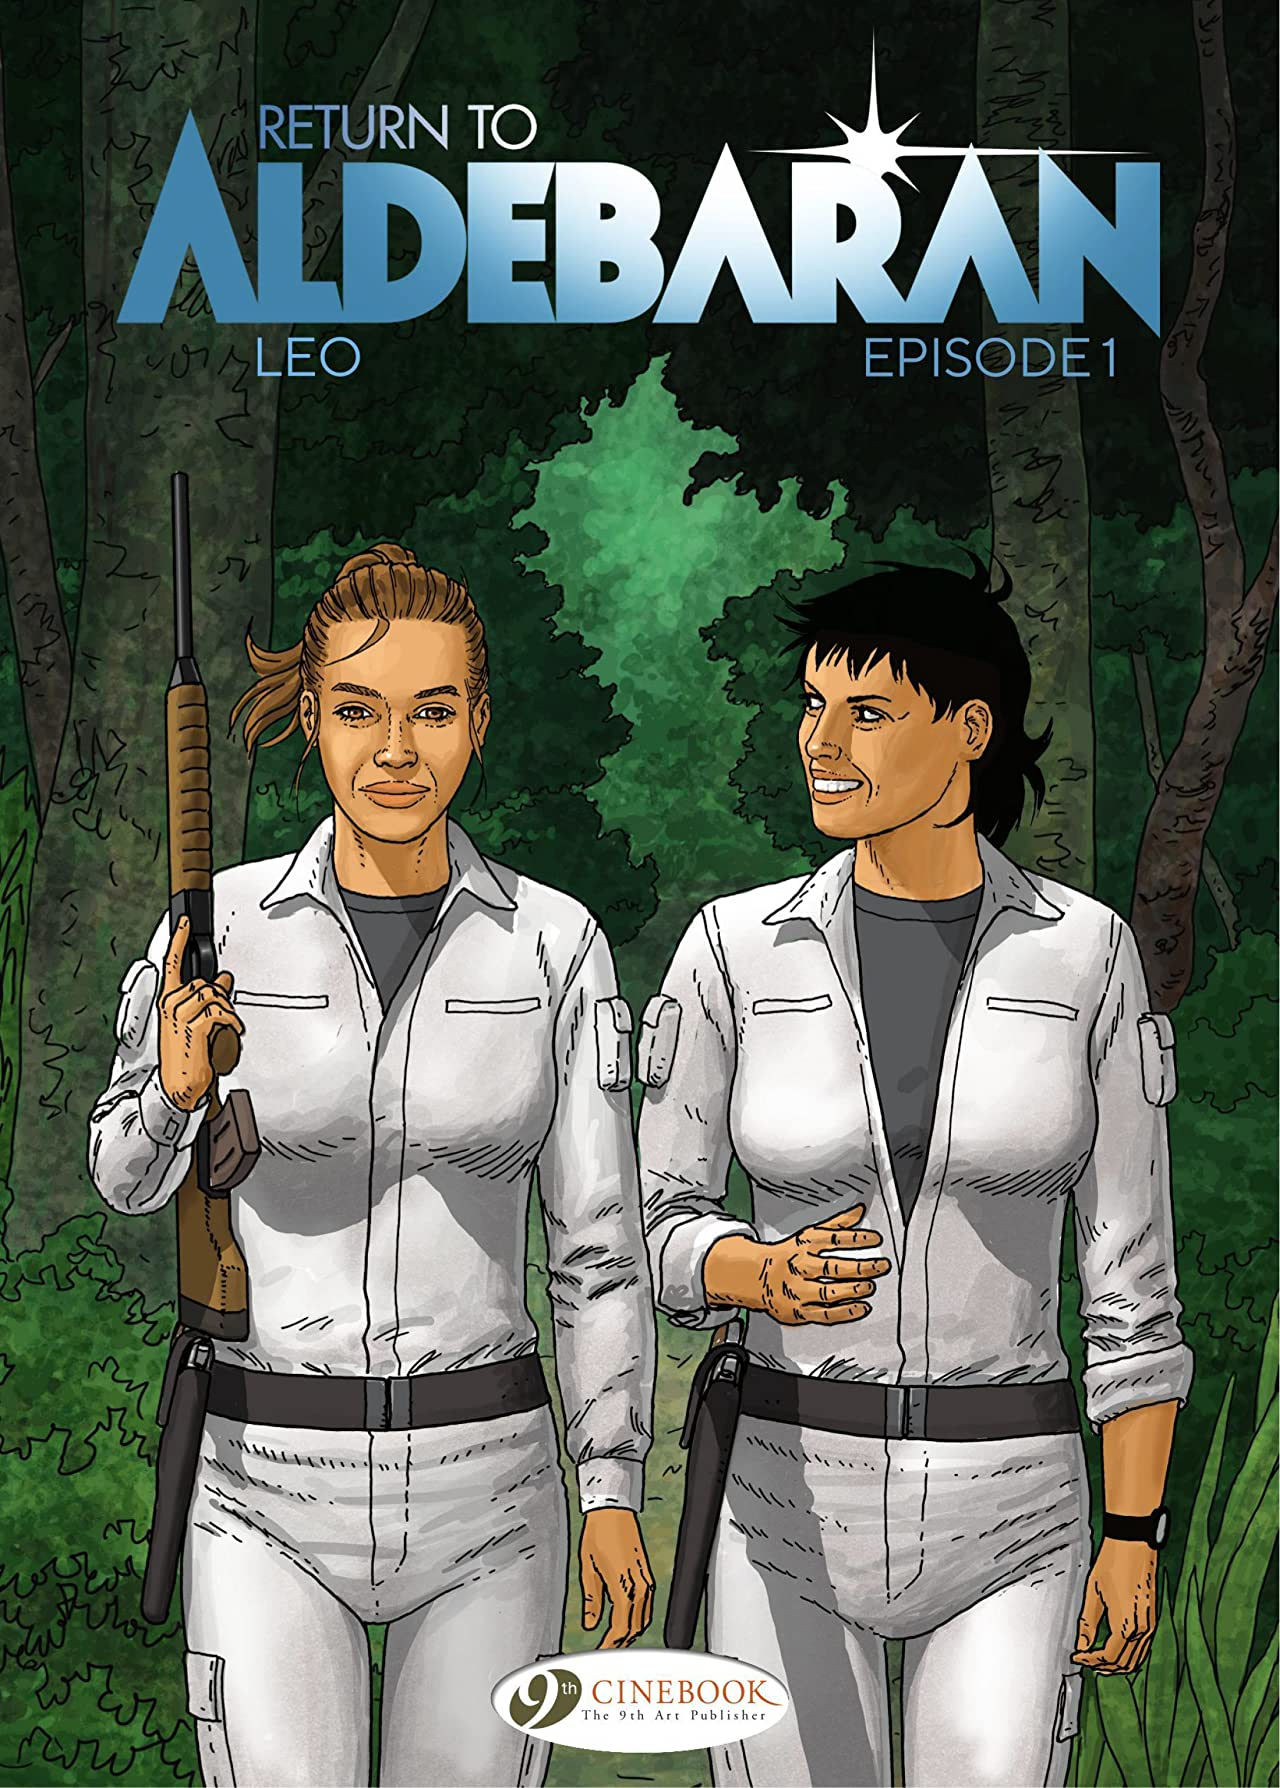 Return to Aldebaran: Episode 1